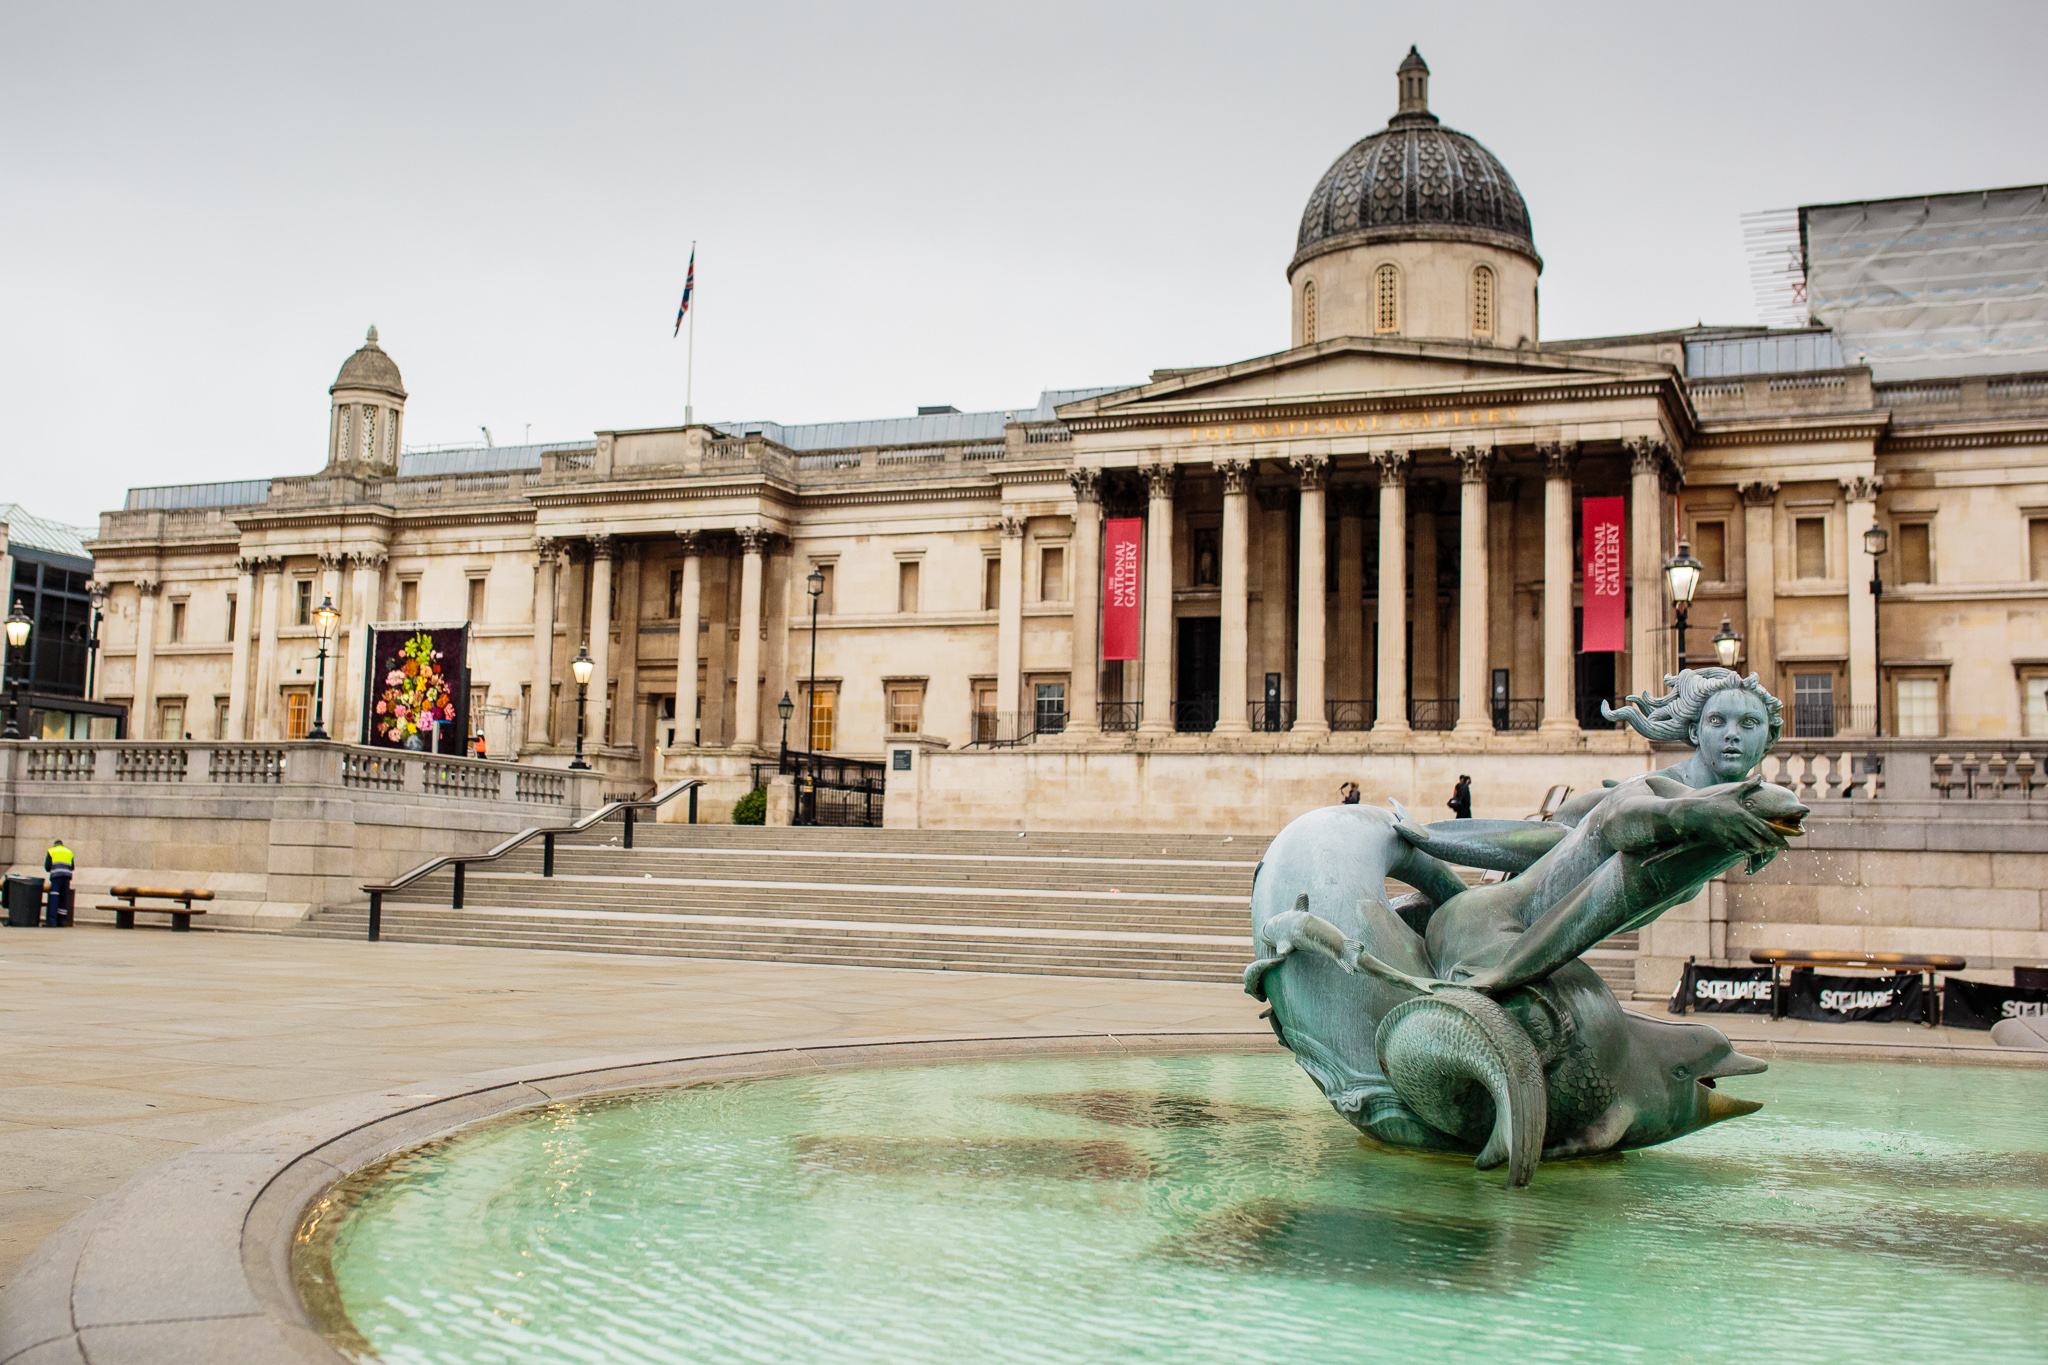 Wide shot of Trafalgar Square and installation by The Flower Council of Holland